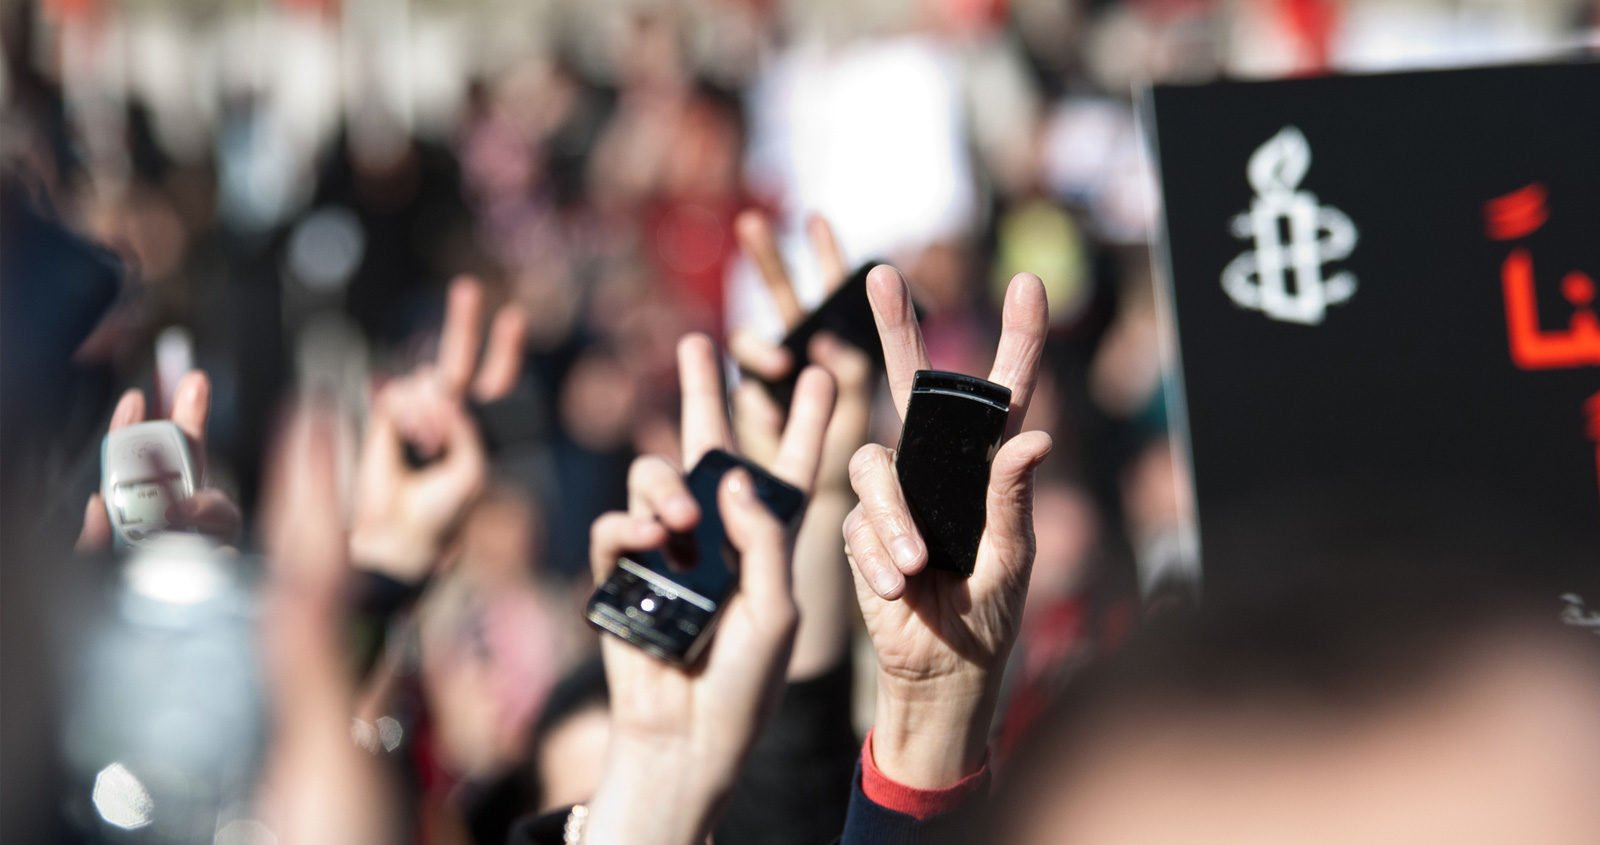 Protestors hands holding mobile phones